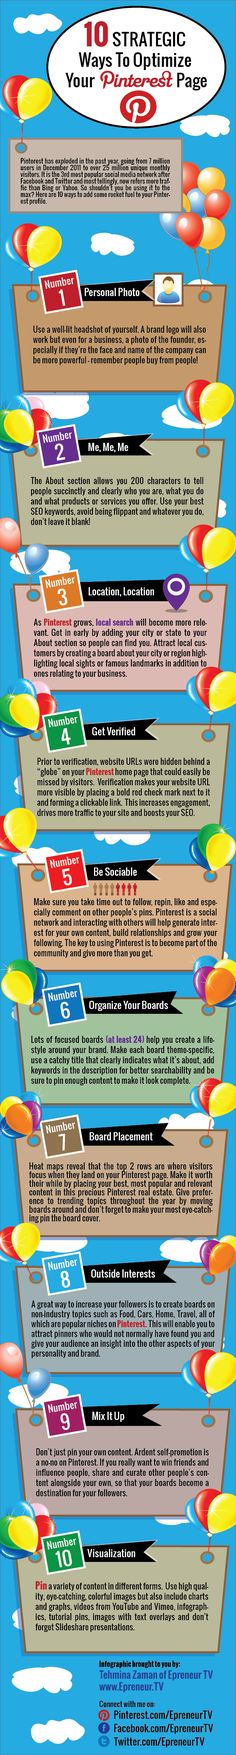 10 Strategic Ways To Optimize Your Pinterest Page #Infographic